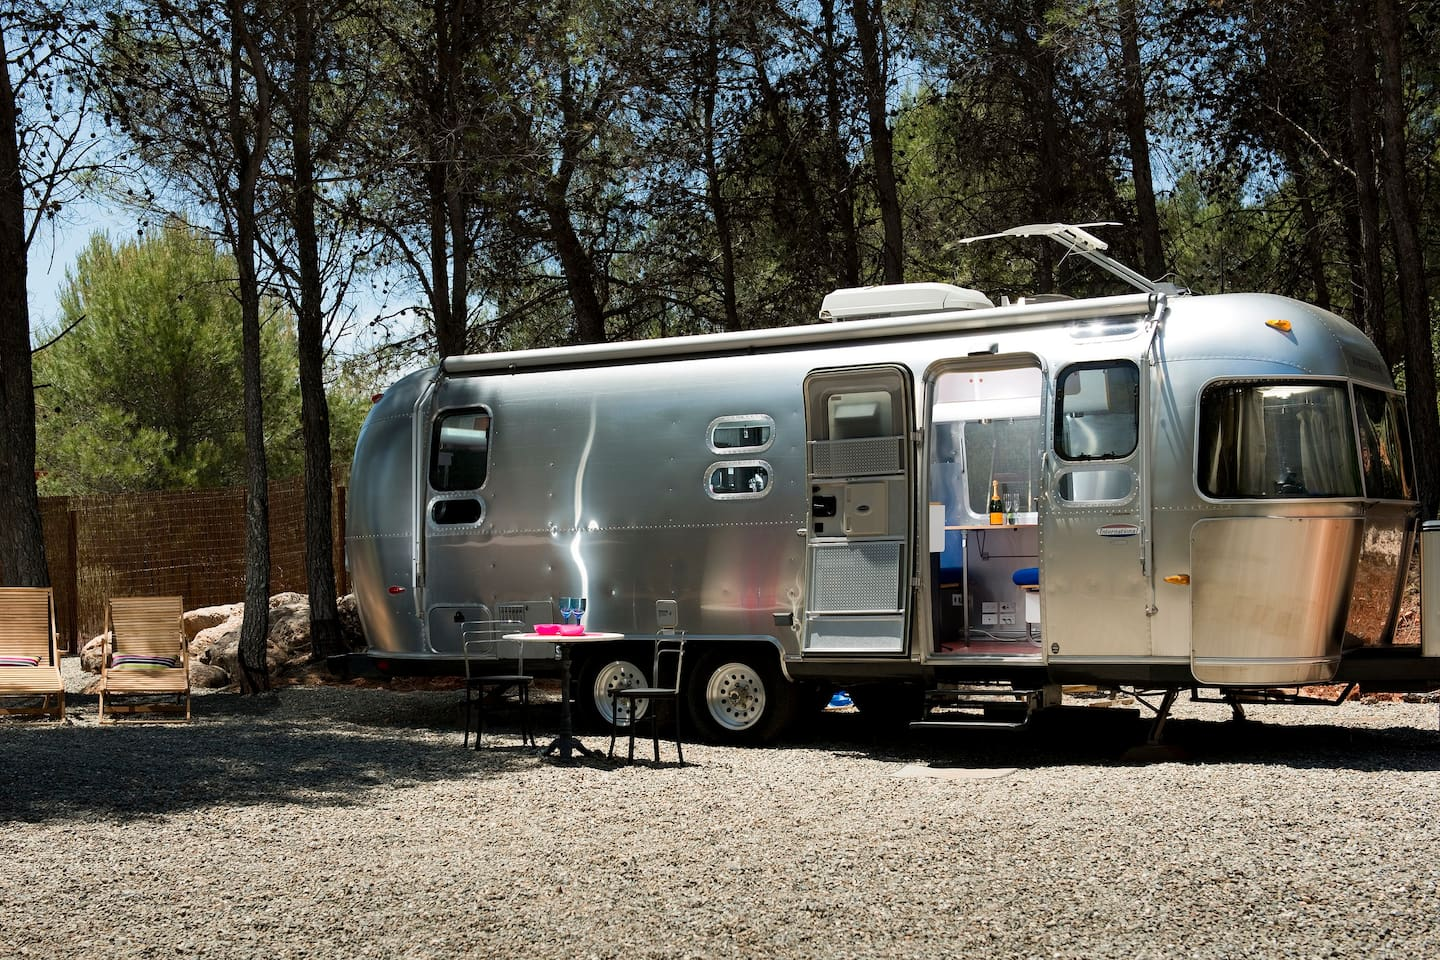 A Limited Edition Airstream International.